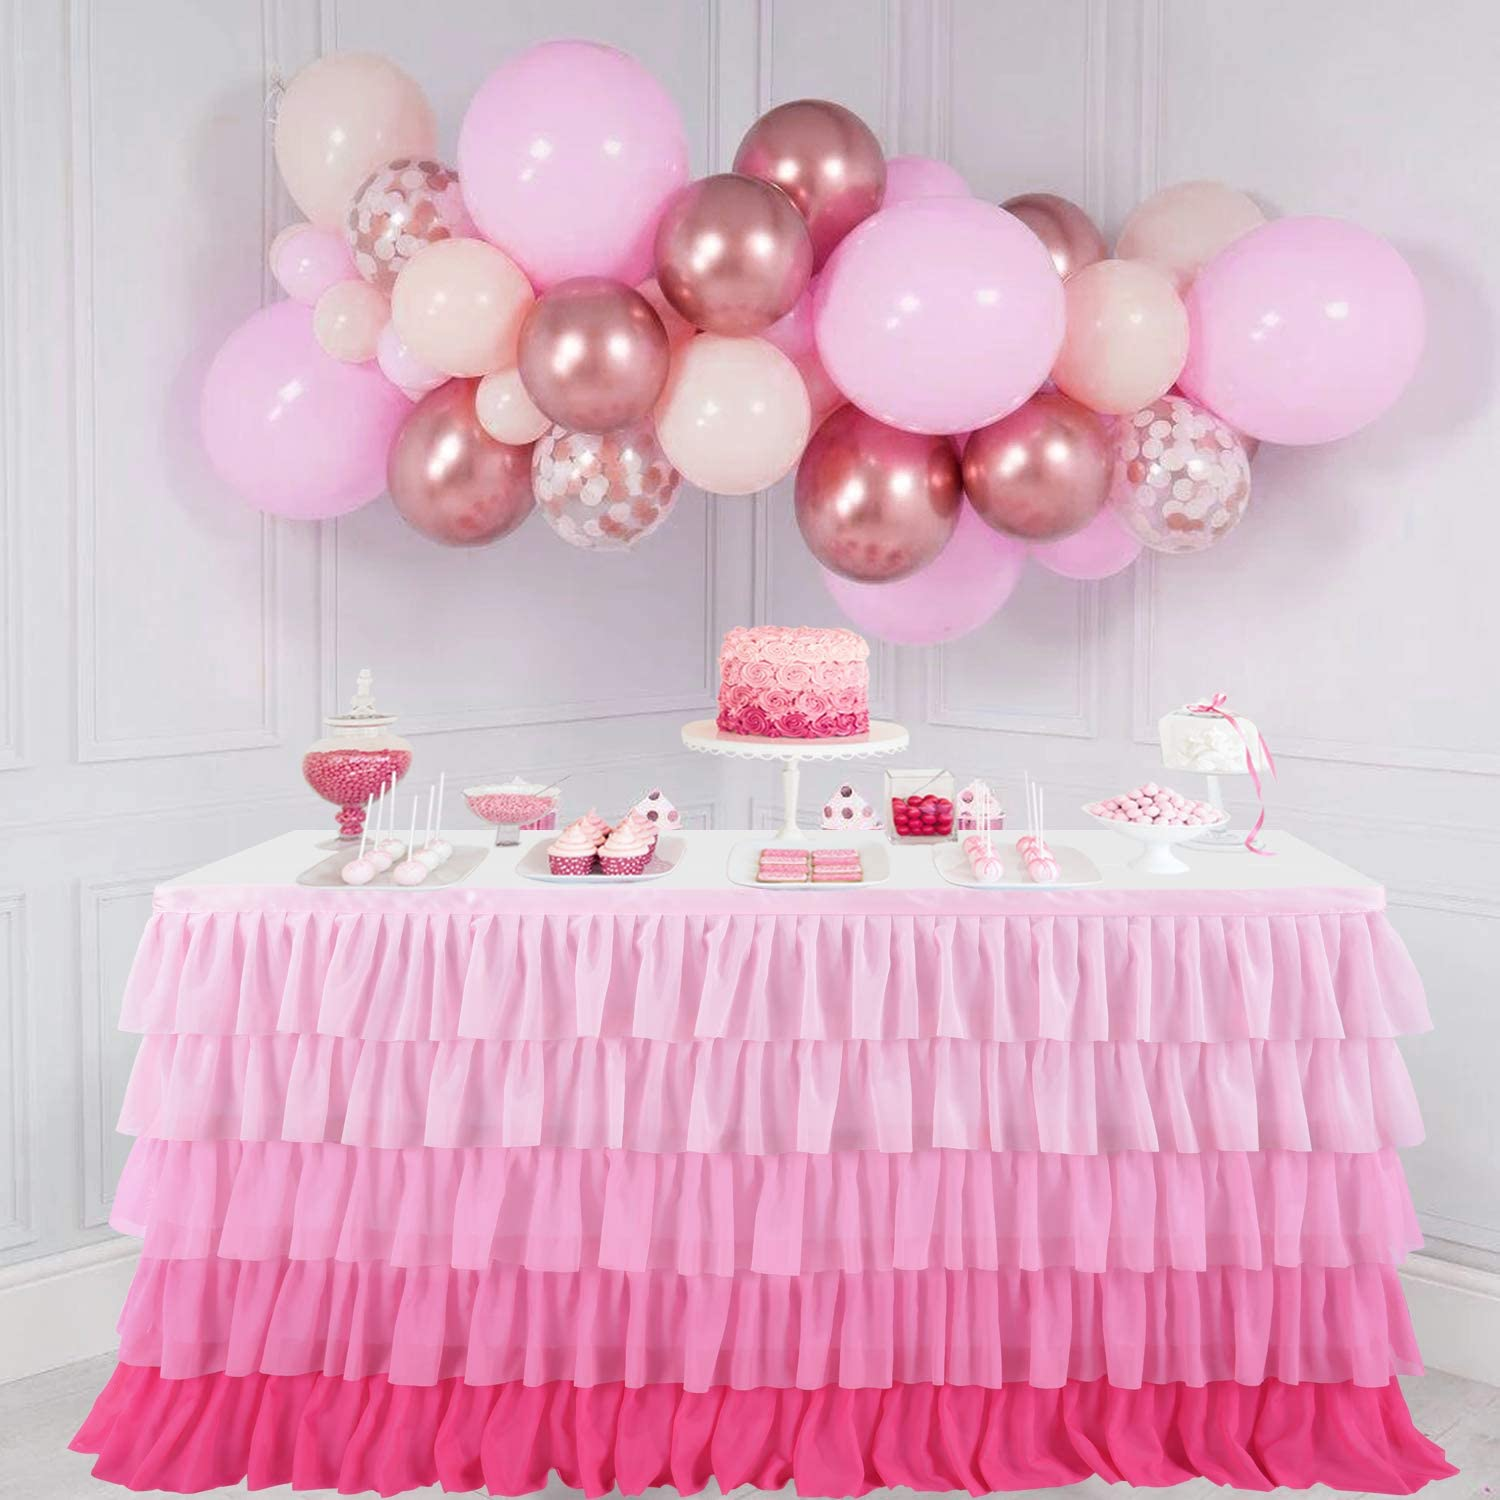 Pink Tablecloth Tutu Party Table Skirt for Rectangle Table 6ft Baby Shower Birthday Unicorn Home Decor (Gradient pink)